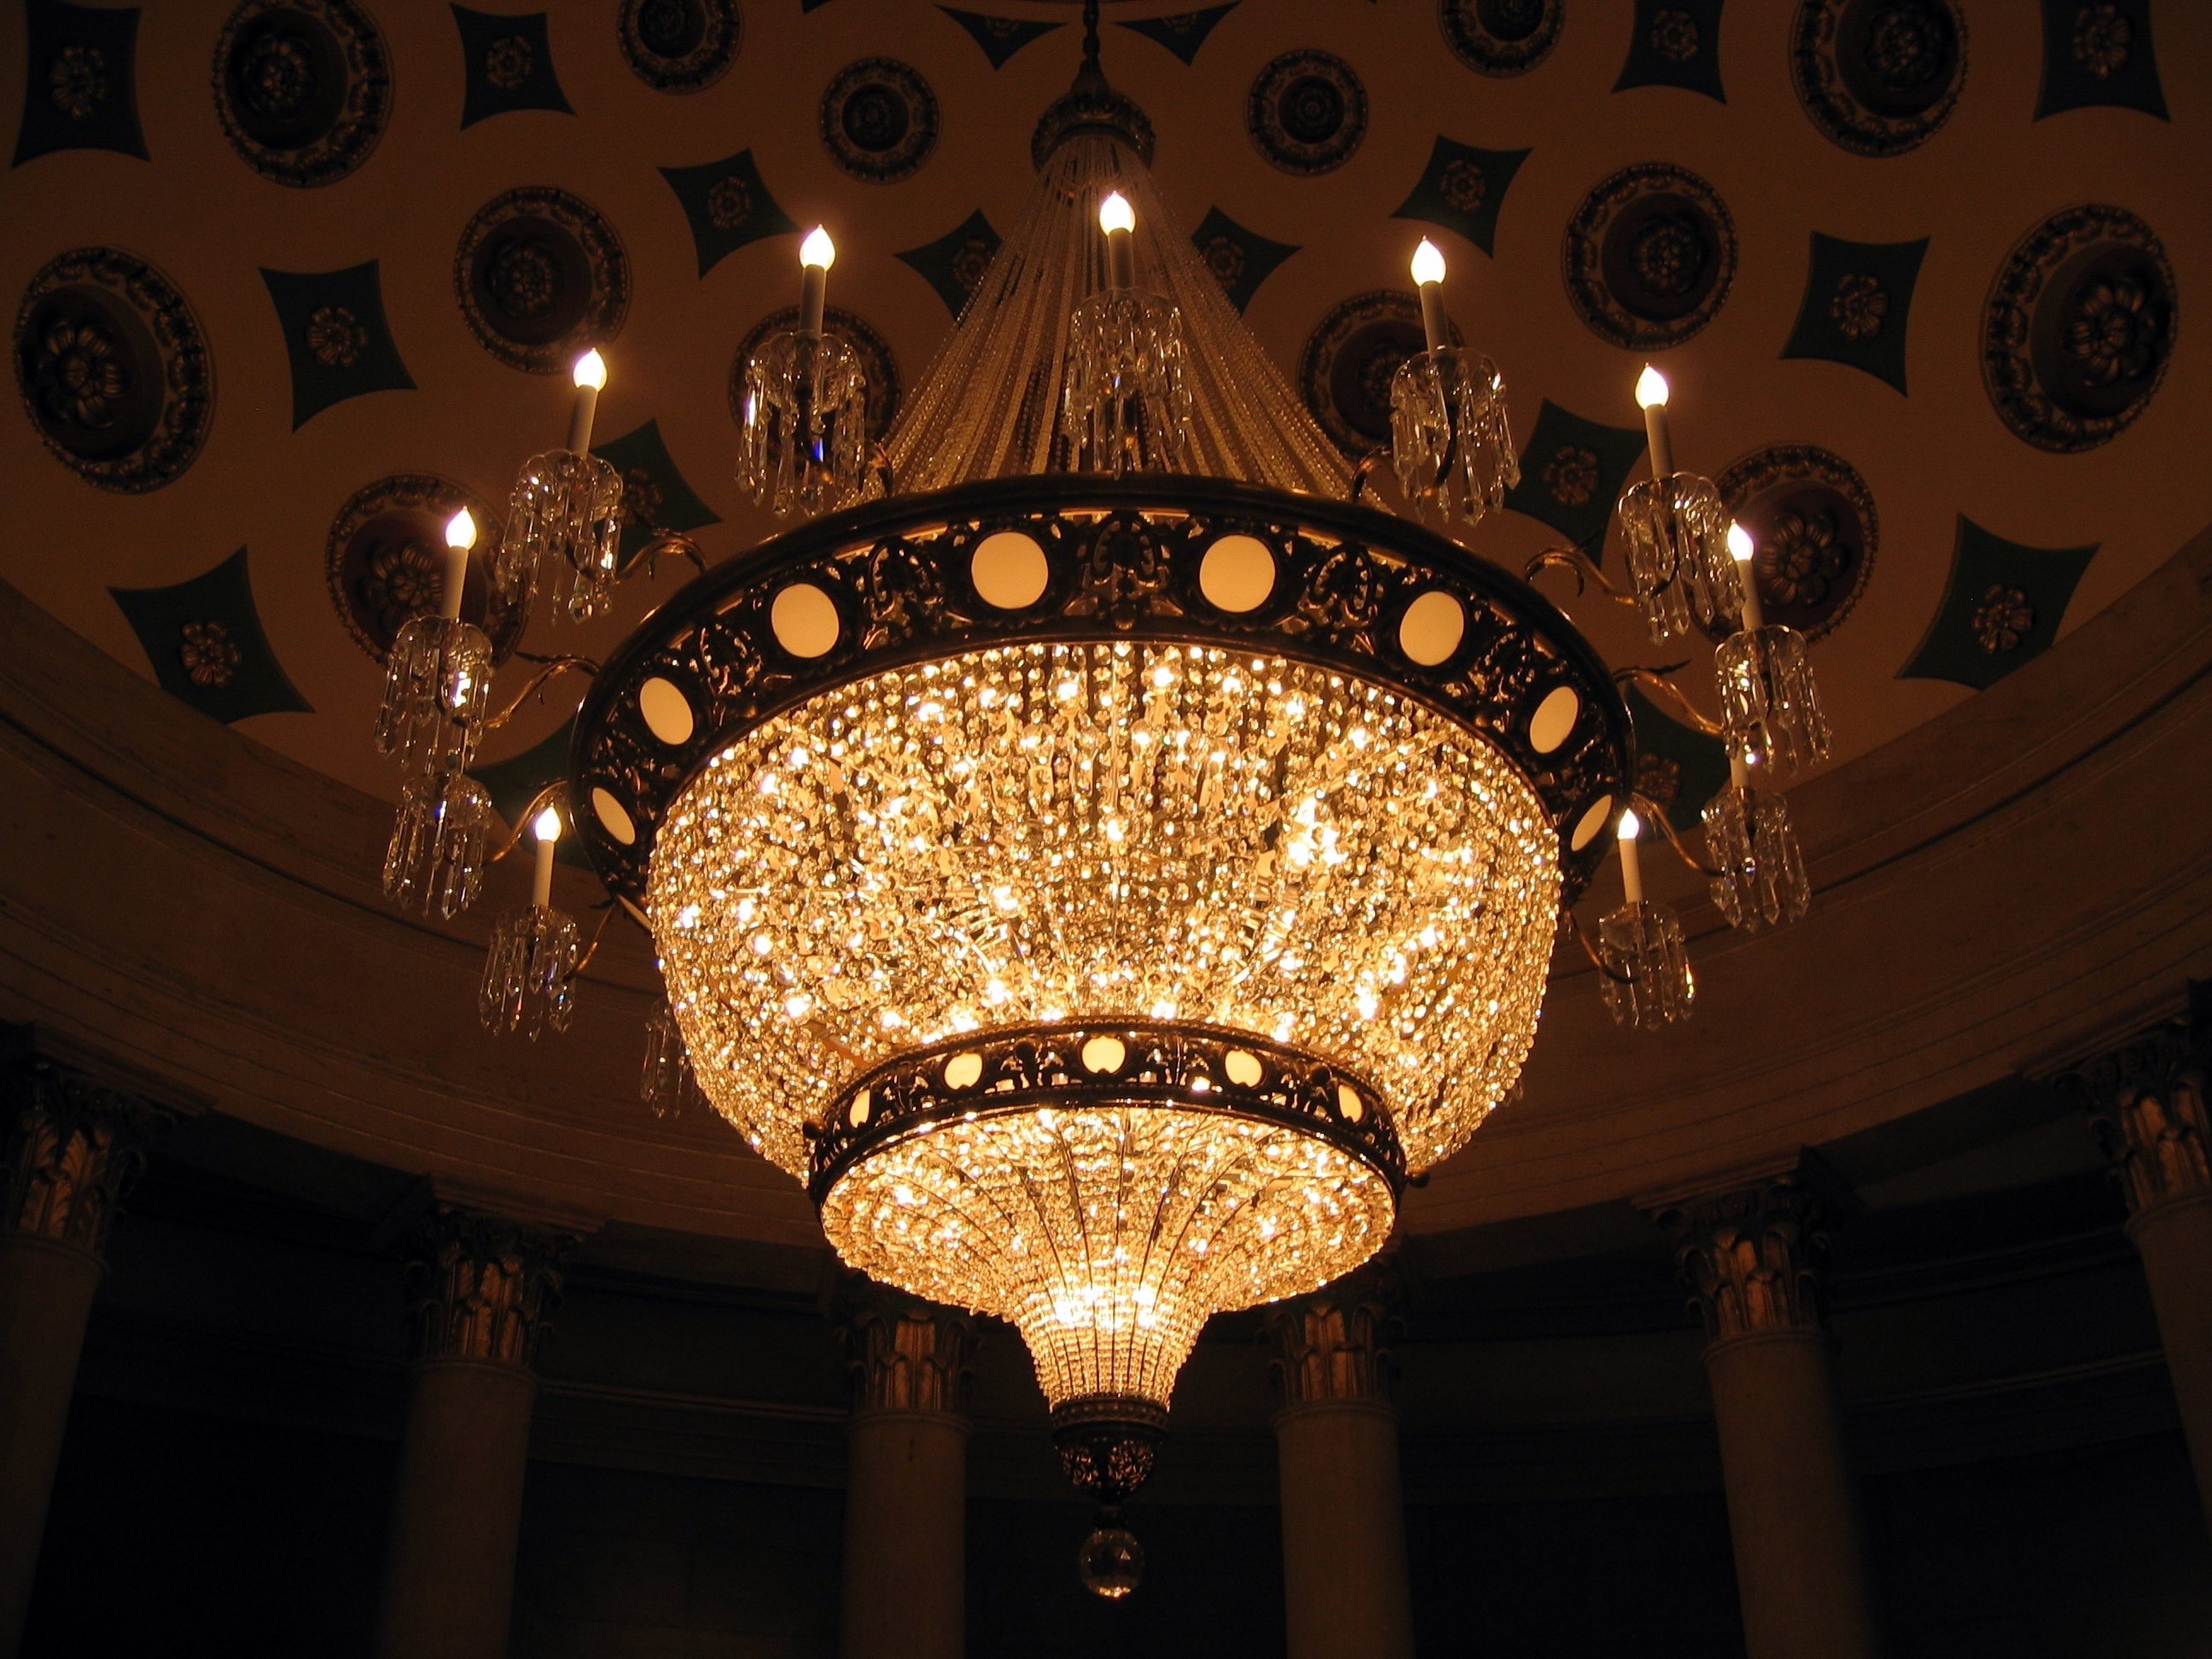 Latest Expensive Crystal Chandeliers Throughout Top 10 Most Expensive Chandeliers In The World – Design Limited Edition (View 8 of 15)